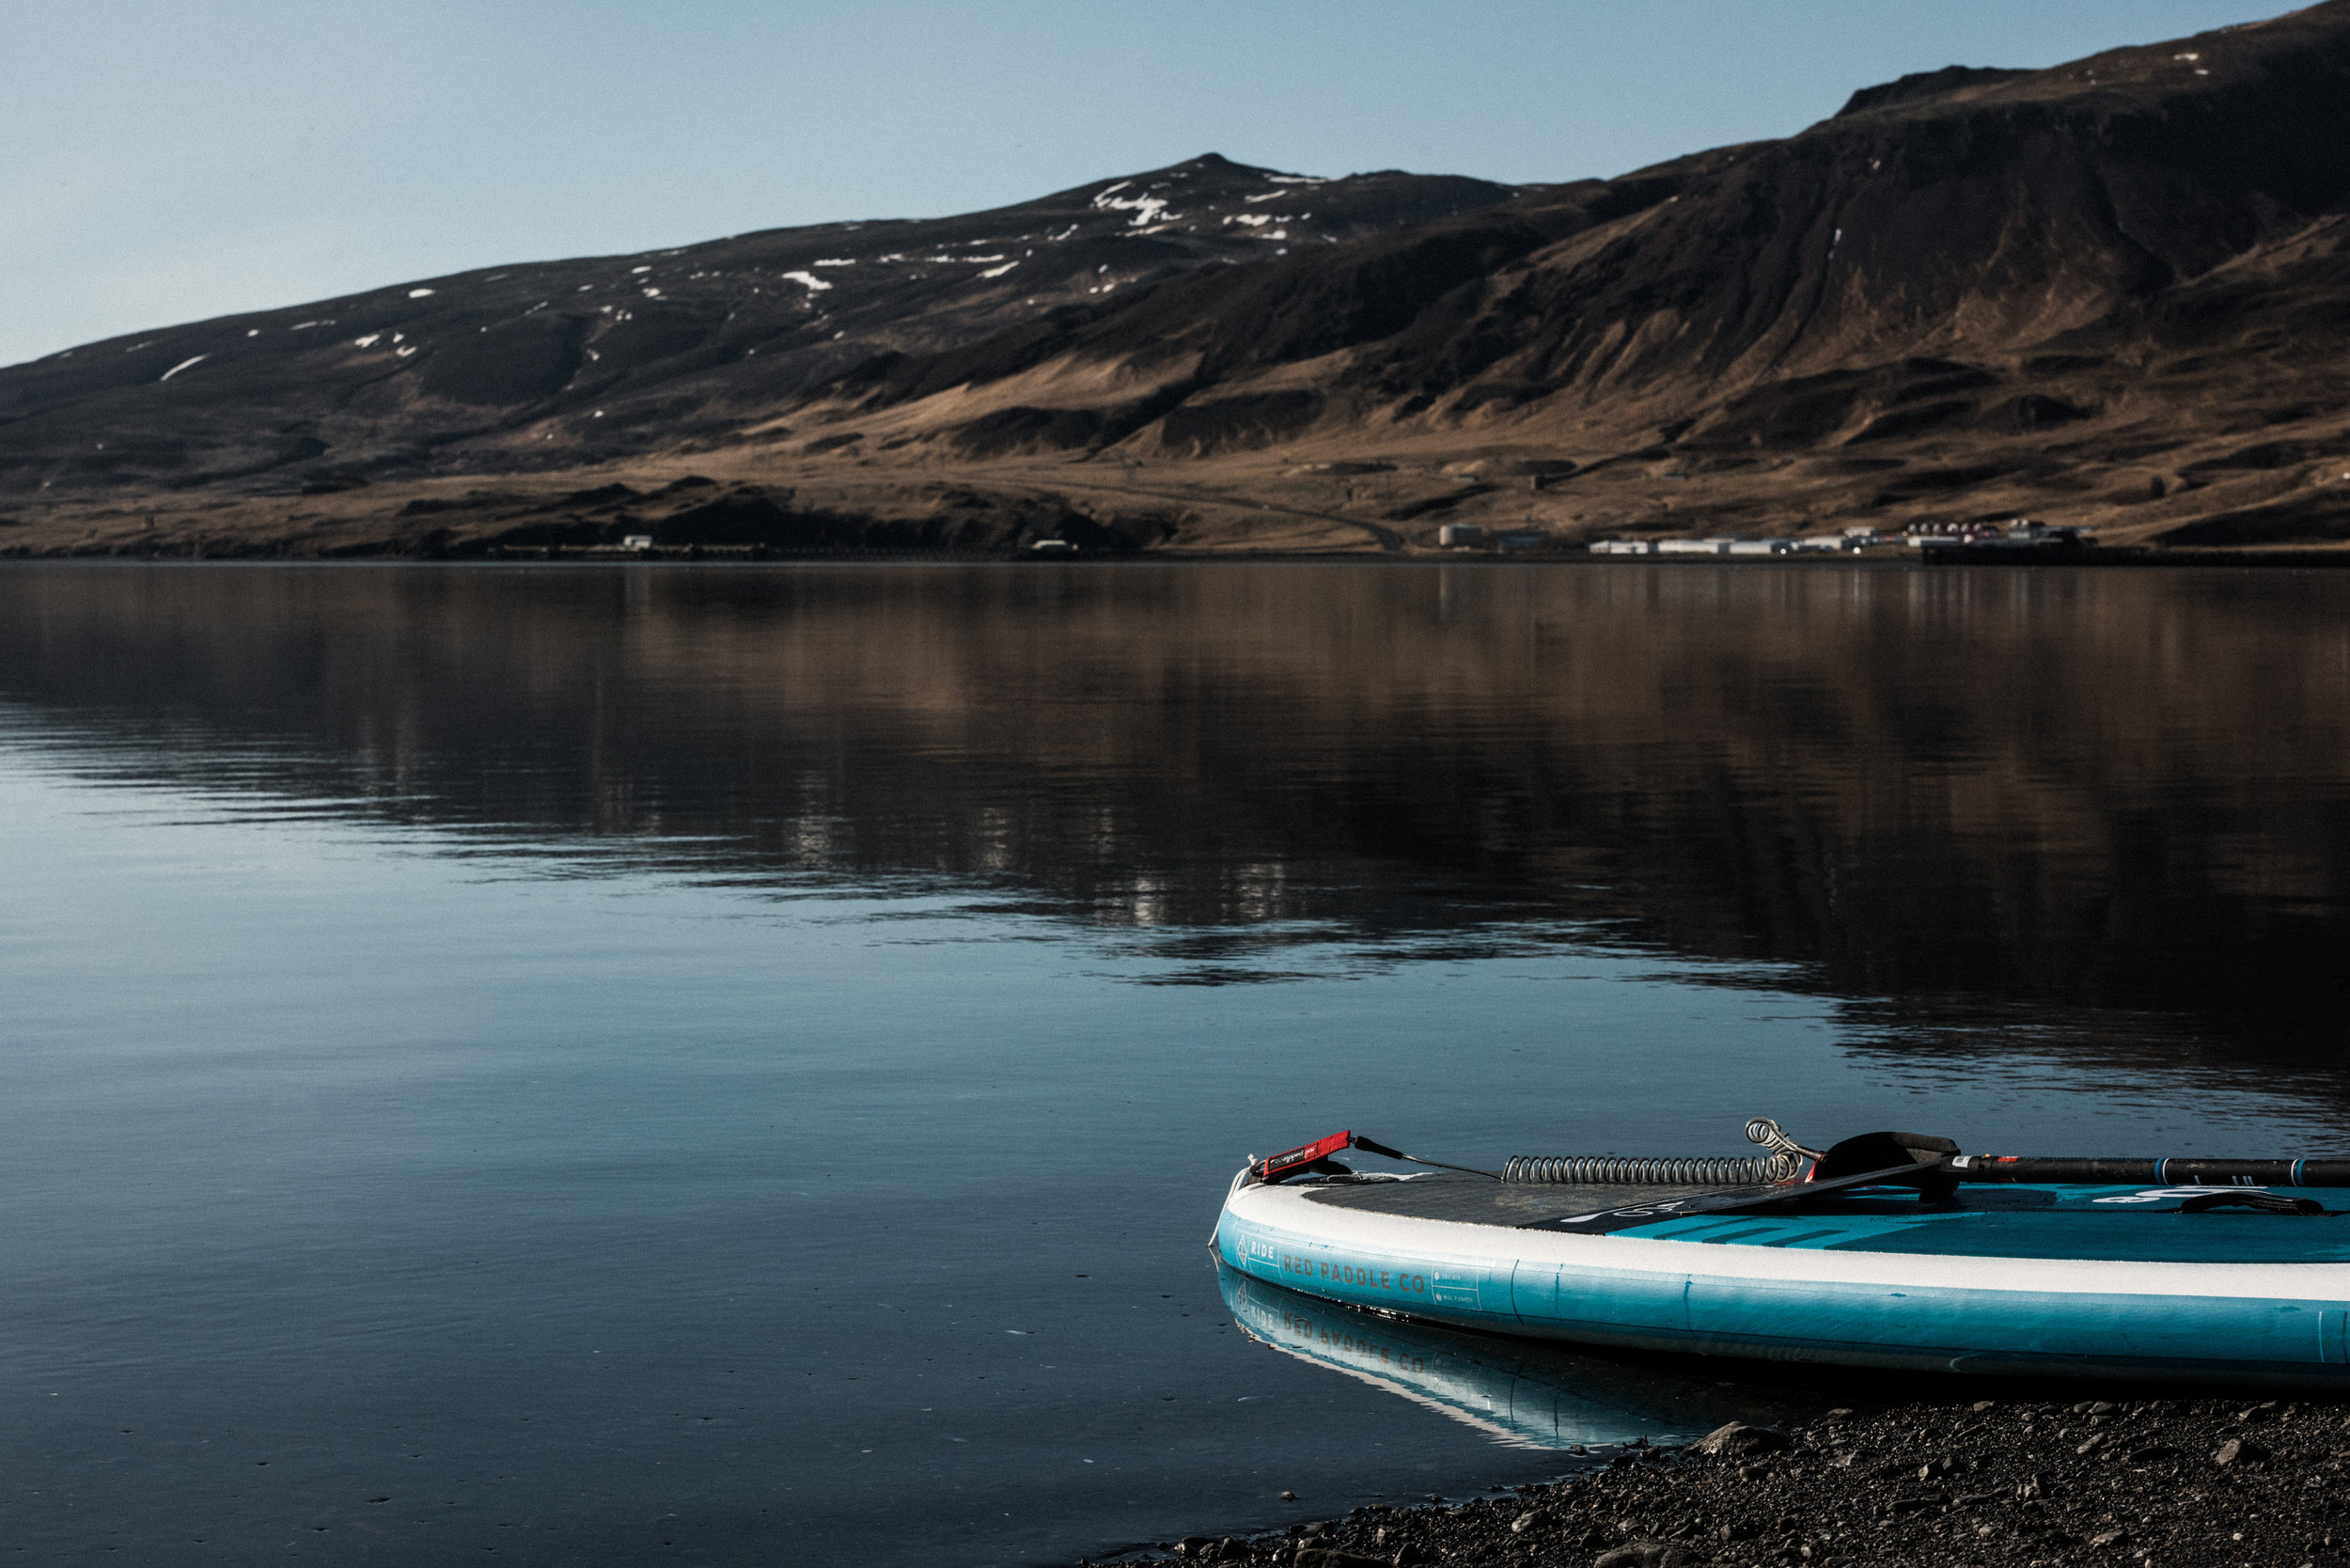 ICELAND_WOMAN_PHOTOGRAPHER_TARASHUPE_OUTDOOR_PHOTOGRAPHY_154.jpg